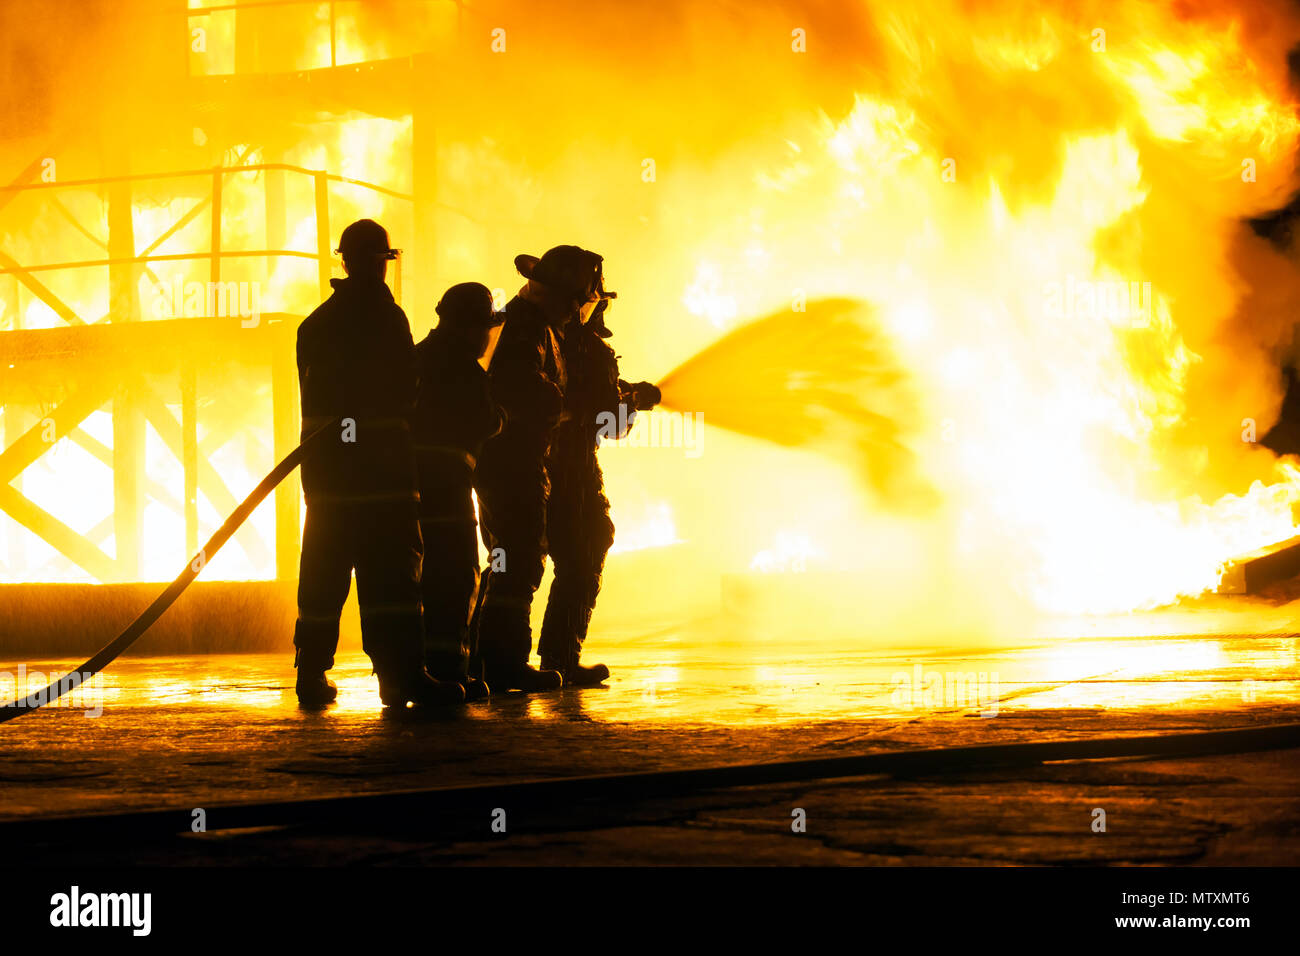 JOHANNESBURG, SOUTH AFRICA - MAY, 2018 Firefighters spraying water at fire during firefighting training exercise Stock Photo